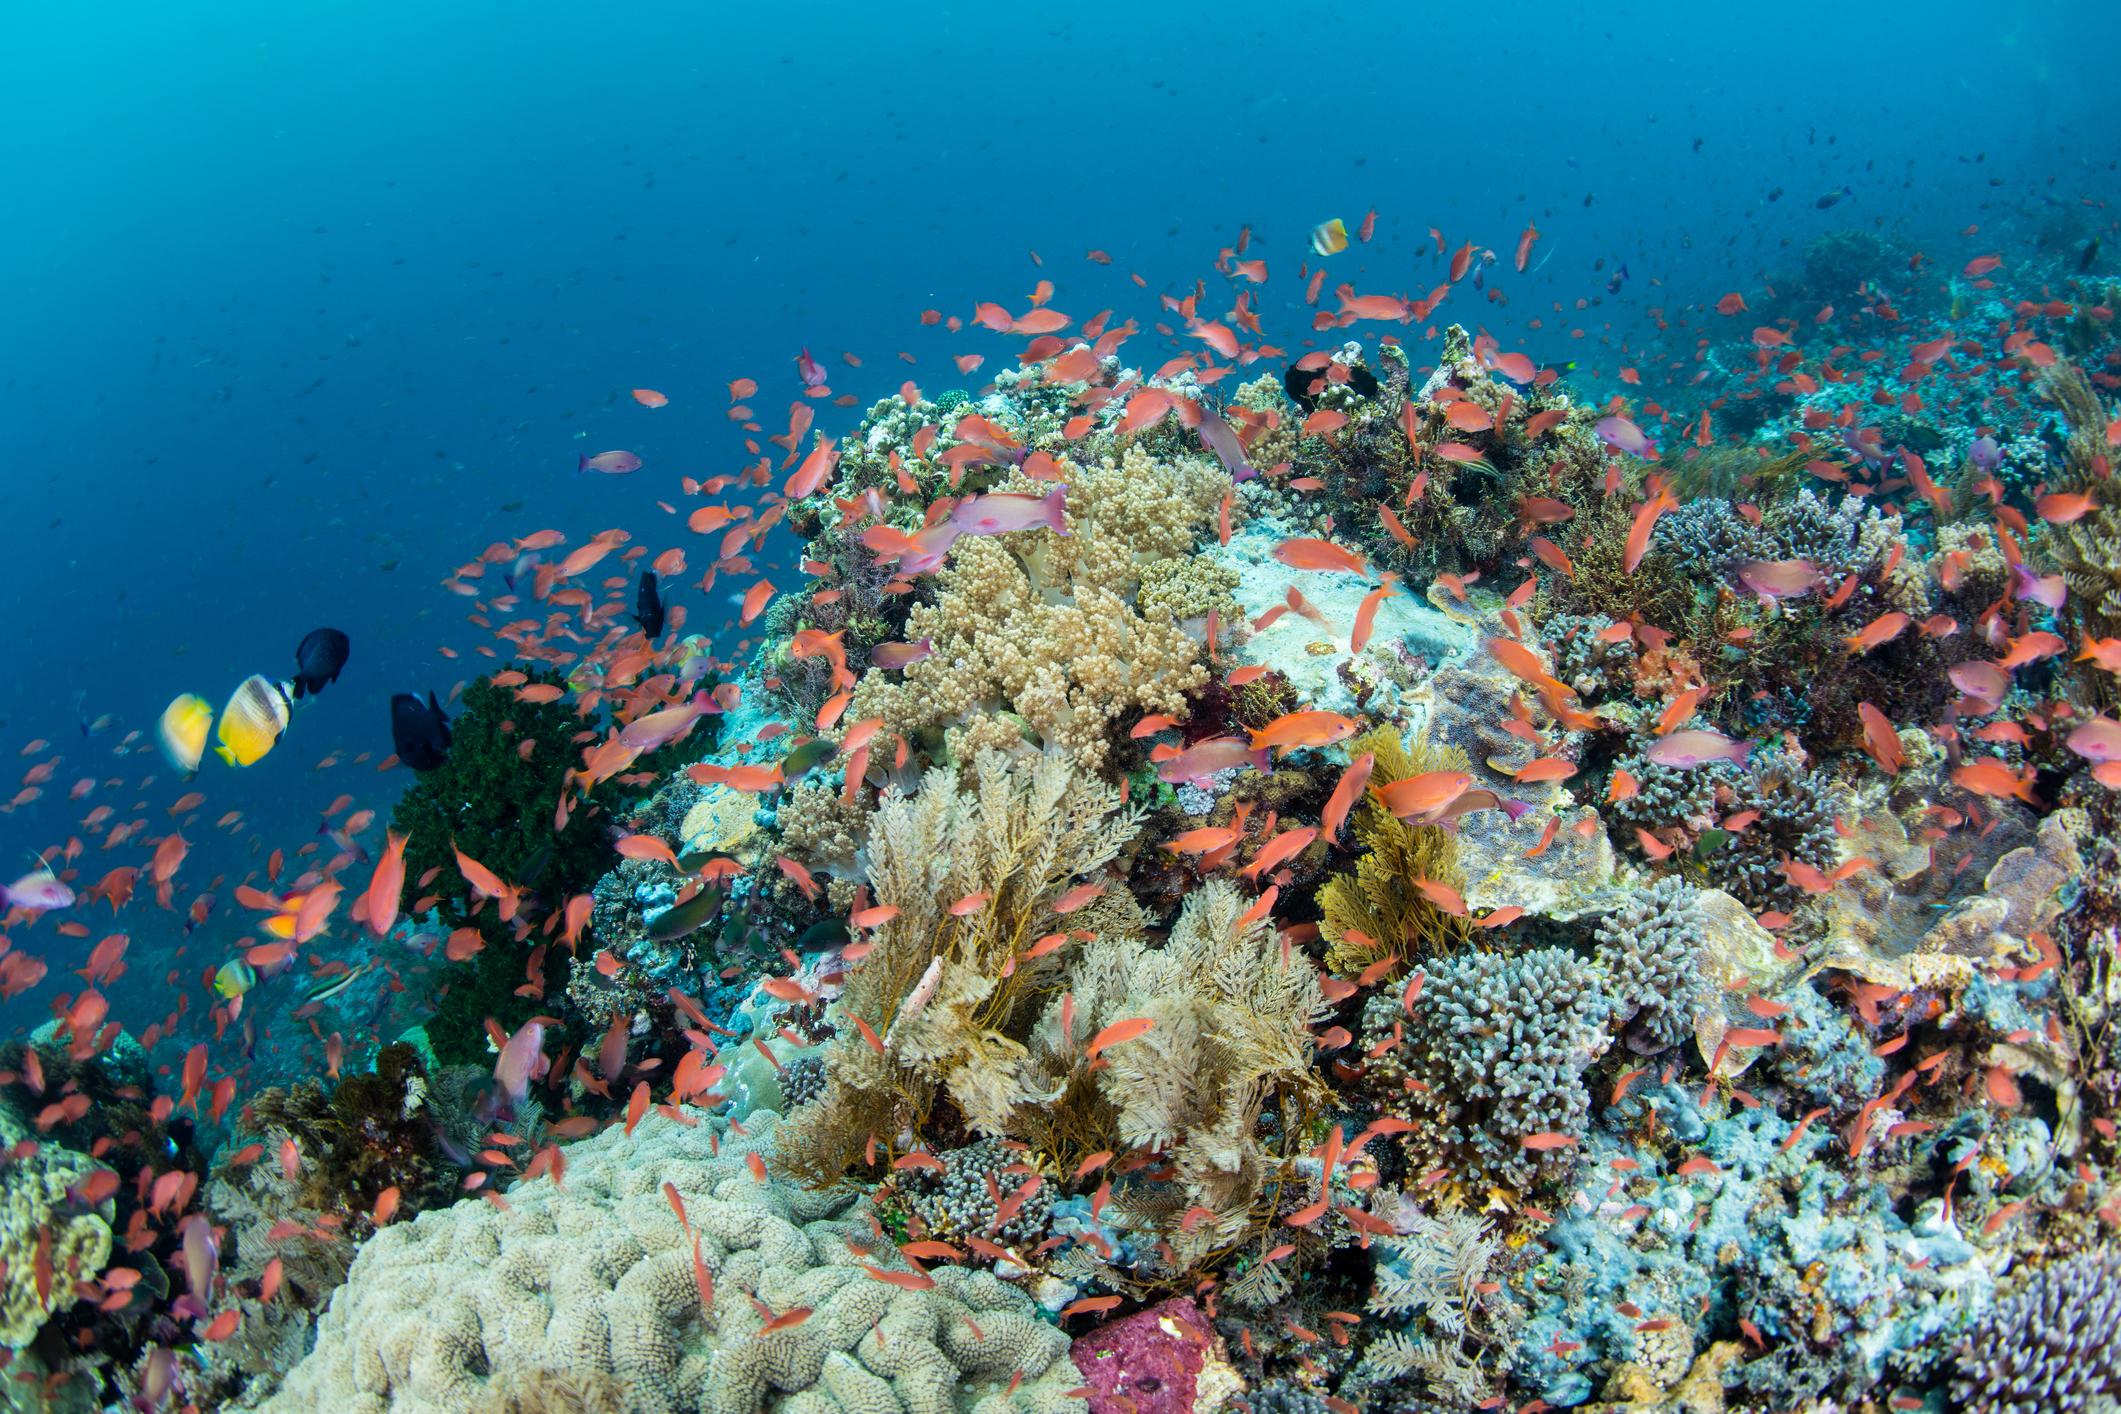 Vibrant Coral Reef in Indonesia